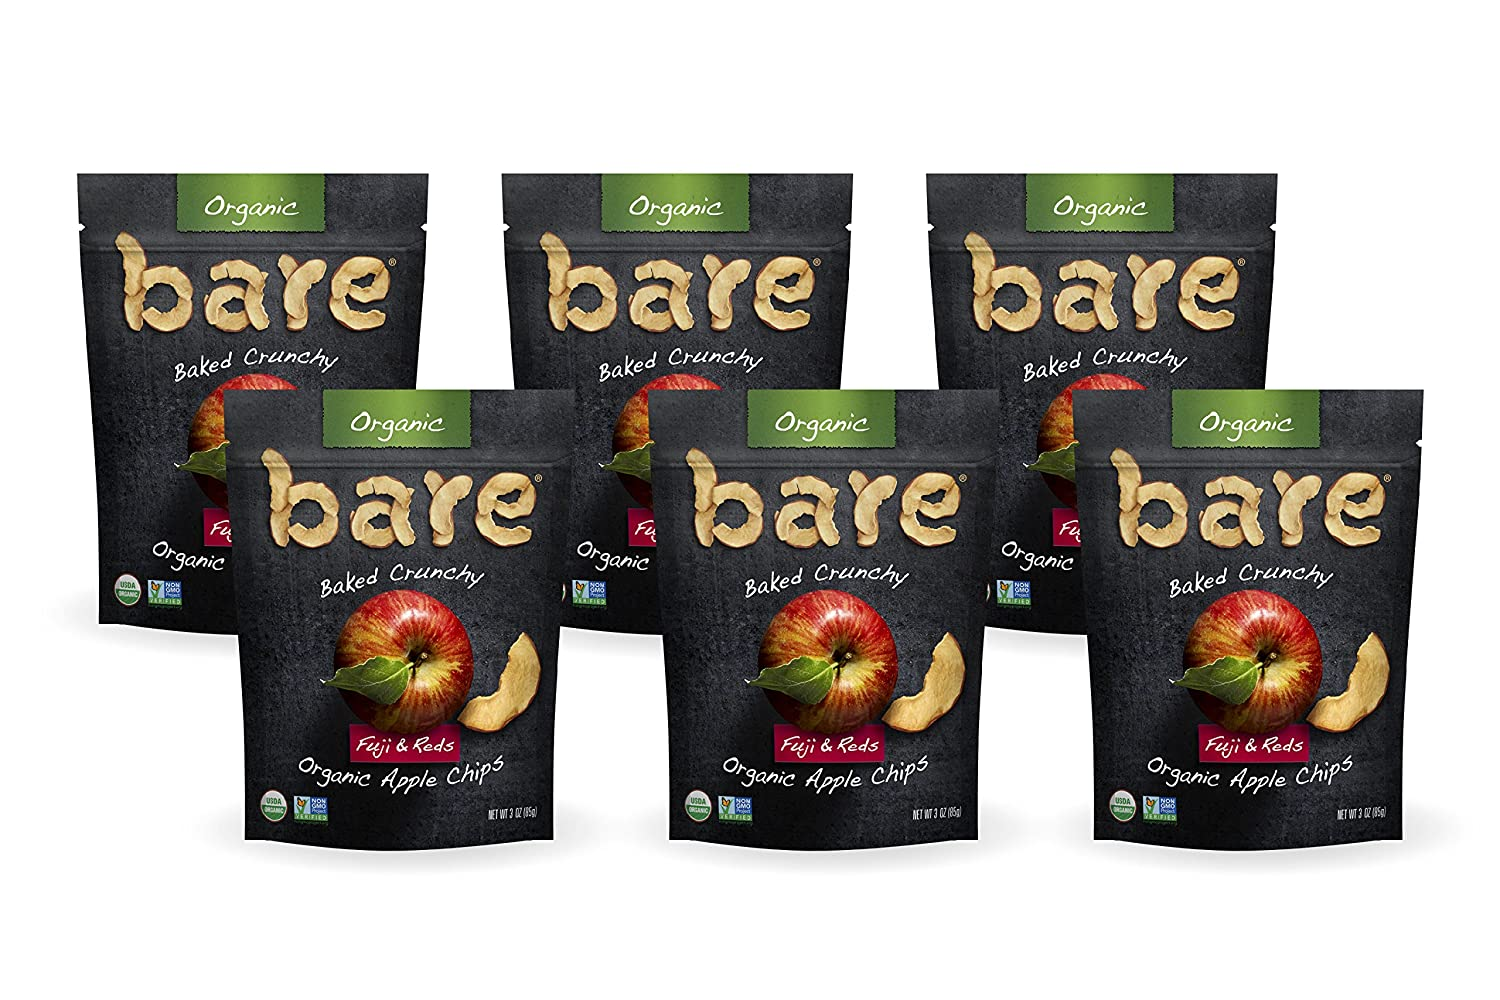 Bare Baked Crunchy Organic Apple Chips, Fuji & Reds, Gluten Free, 3 Ounce Bag, 6 Count